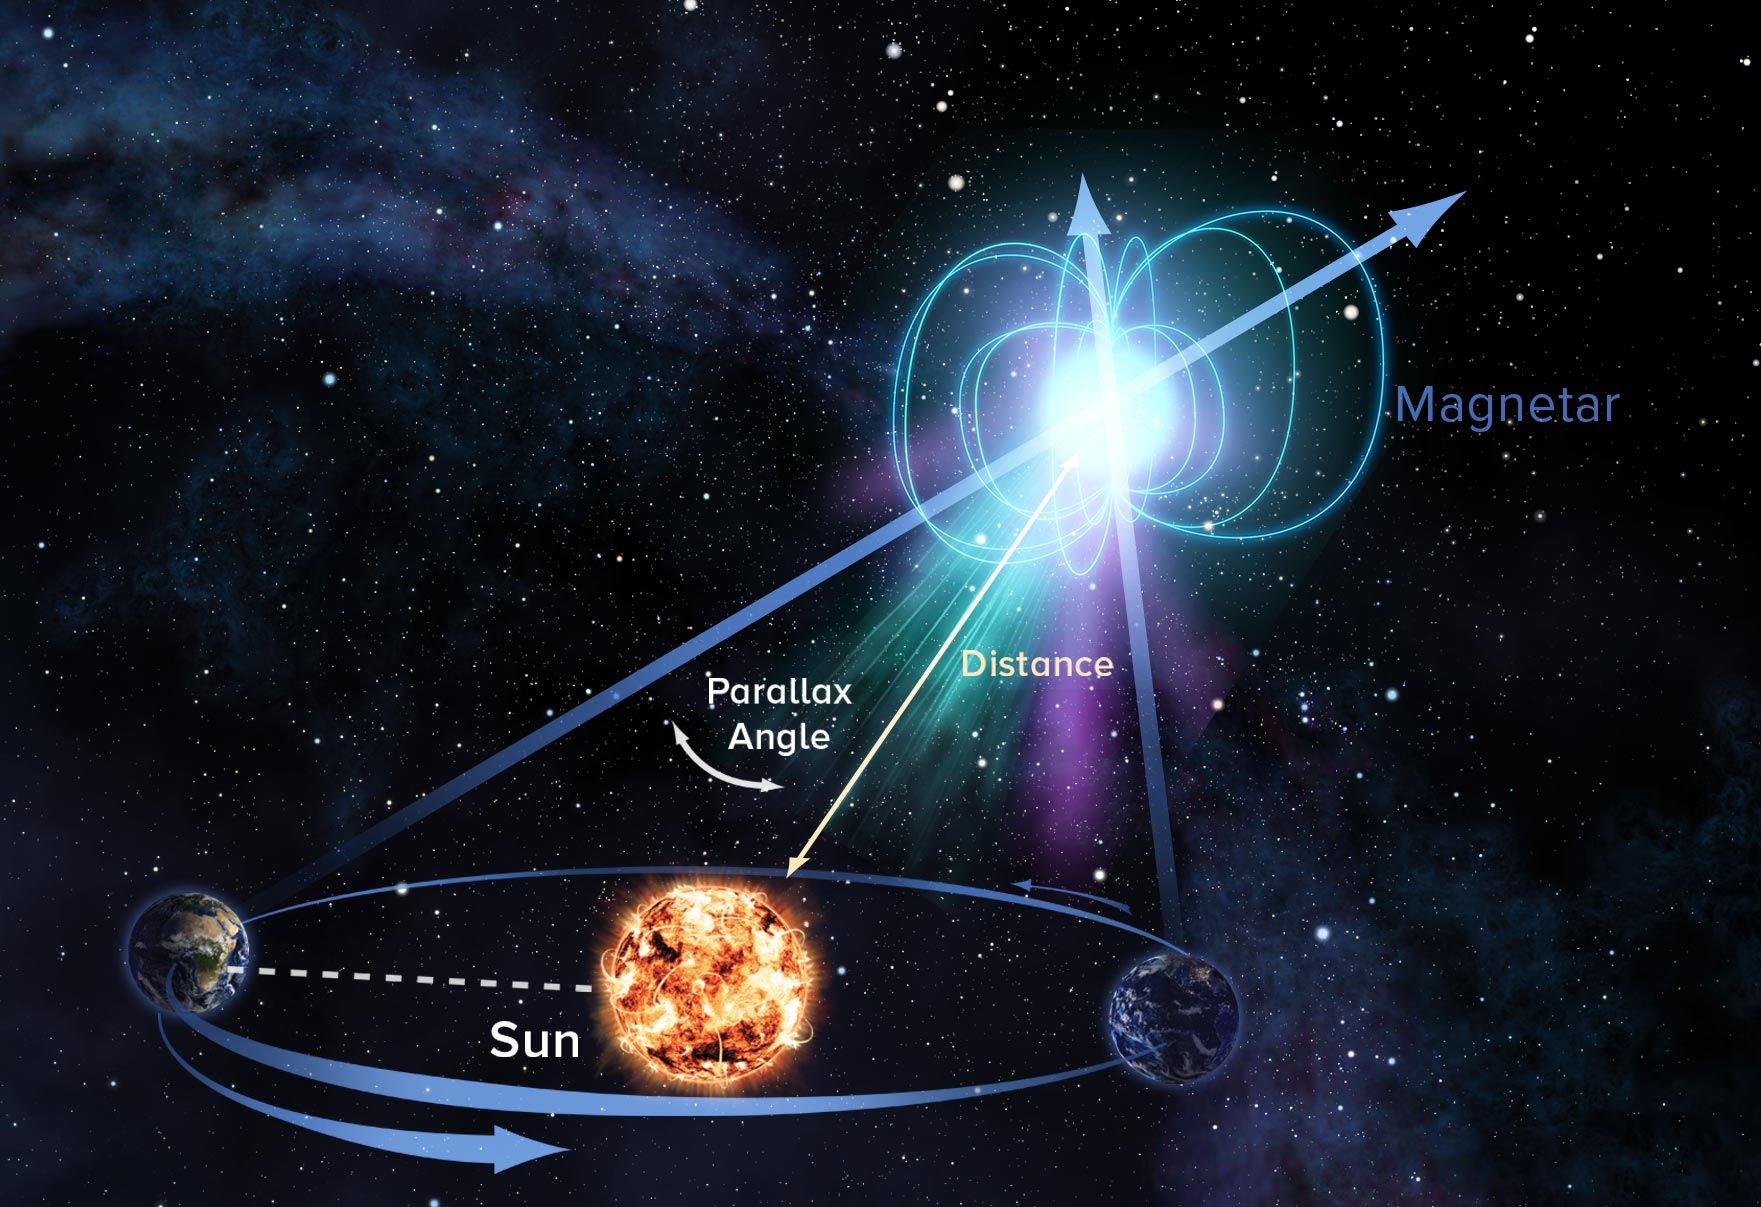 Closing In on Source of Fast Radio Bursts: VLBA Makes First Direct Distance Measurement to Magnetar - SciTechDaily